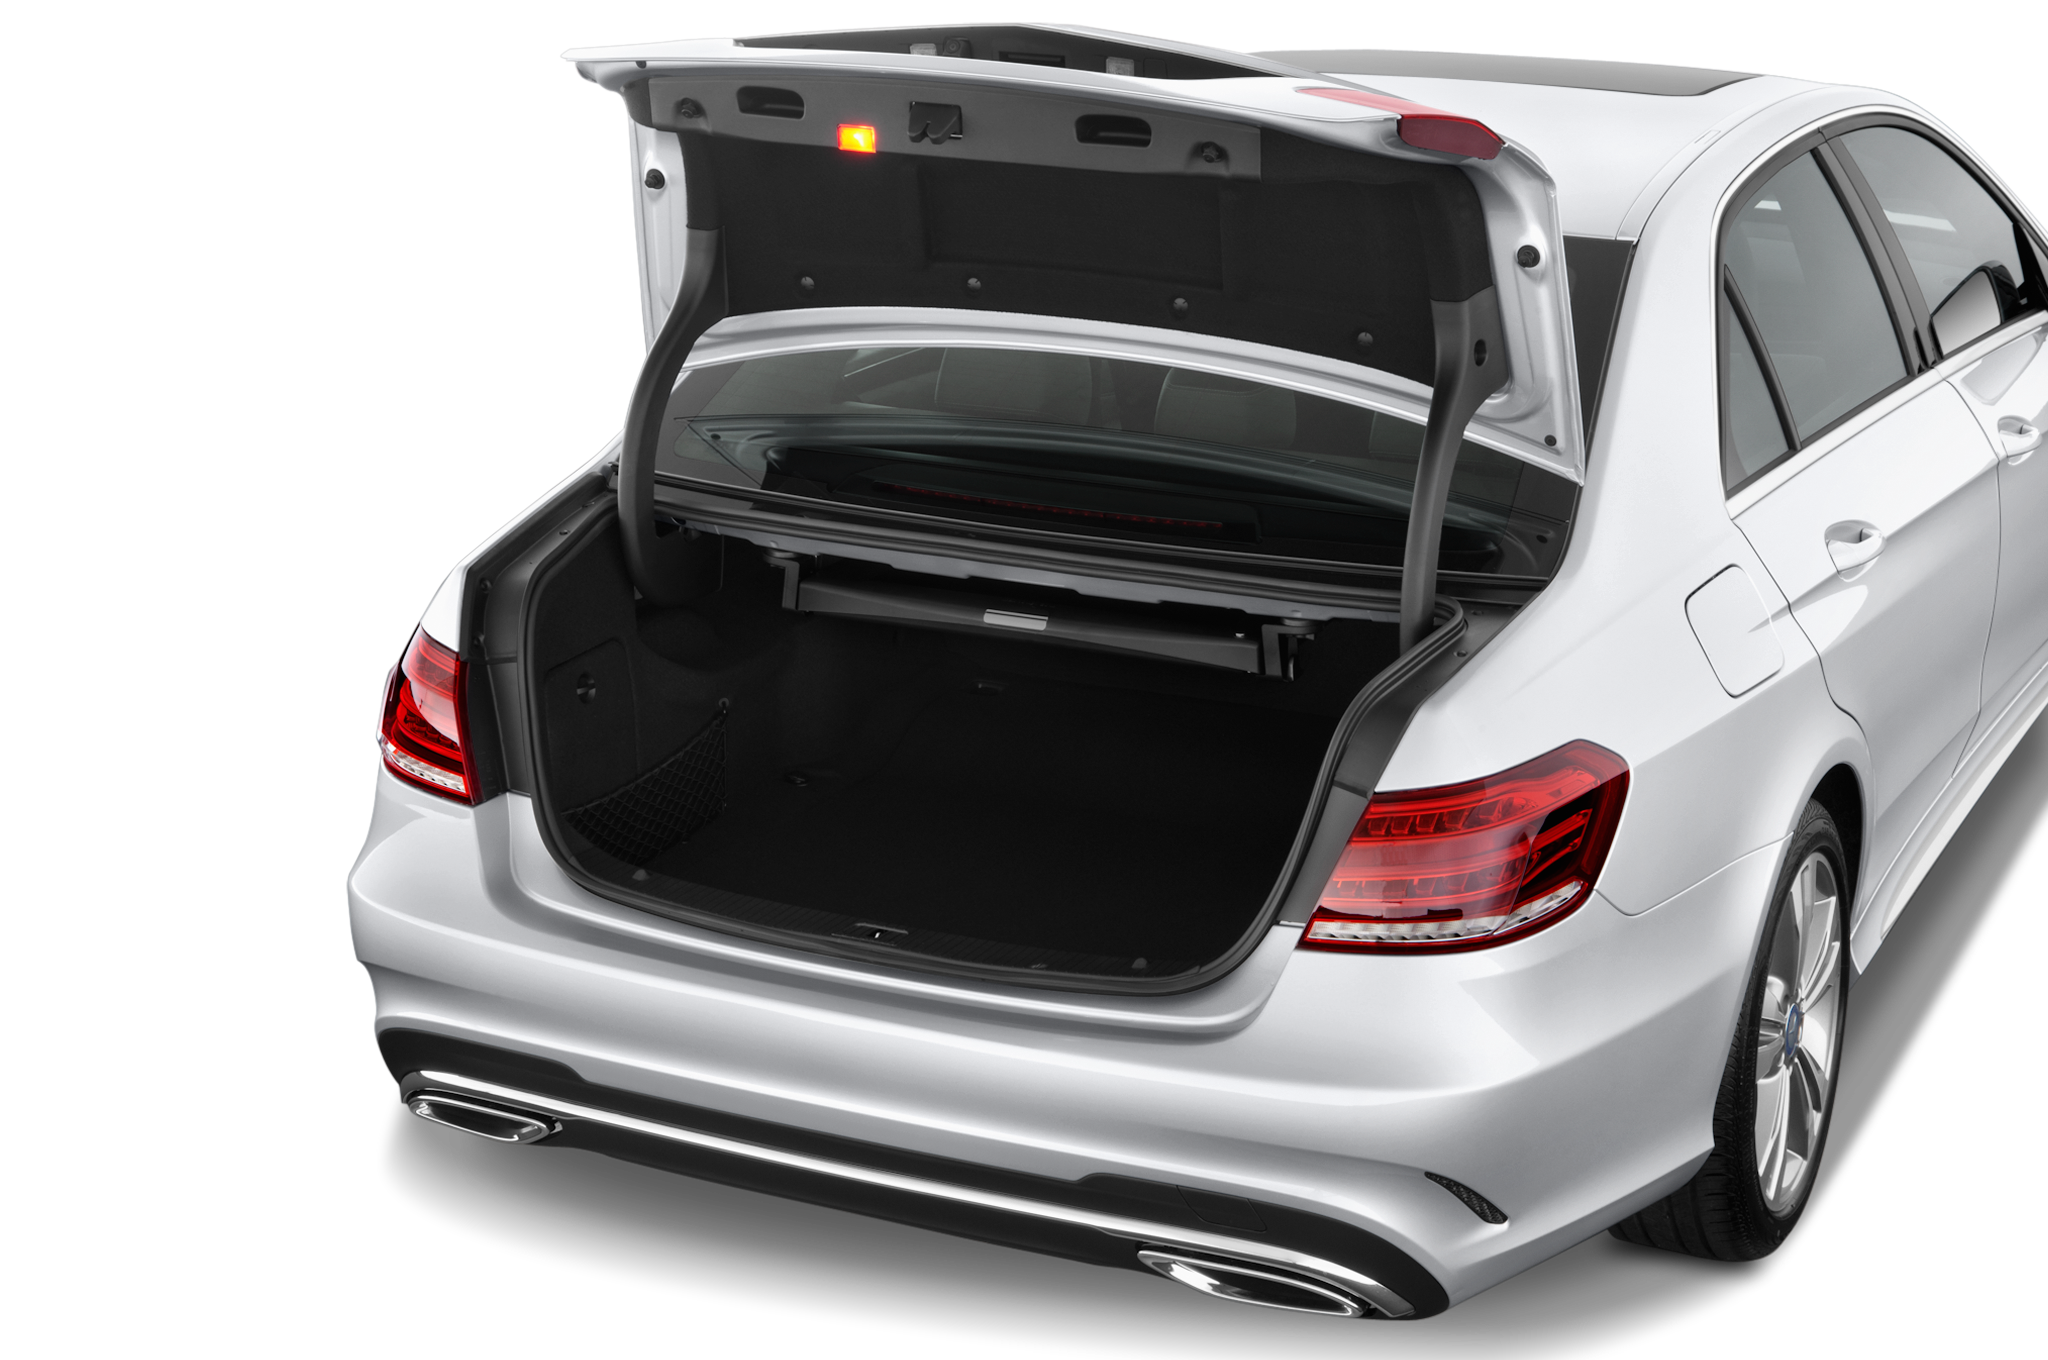 2015 mercedes benz e250 bluetec review for How to open the trunk of a mercedes benz e320